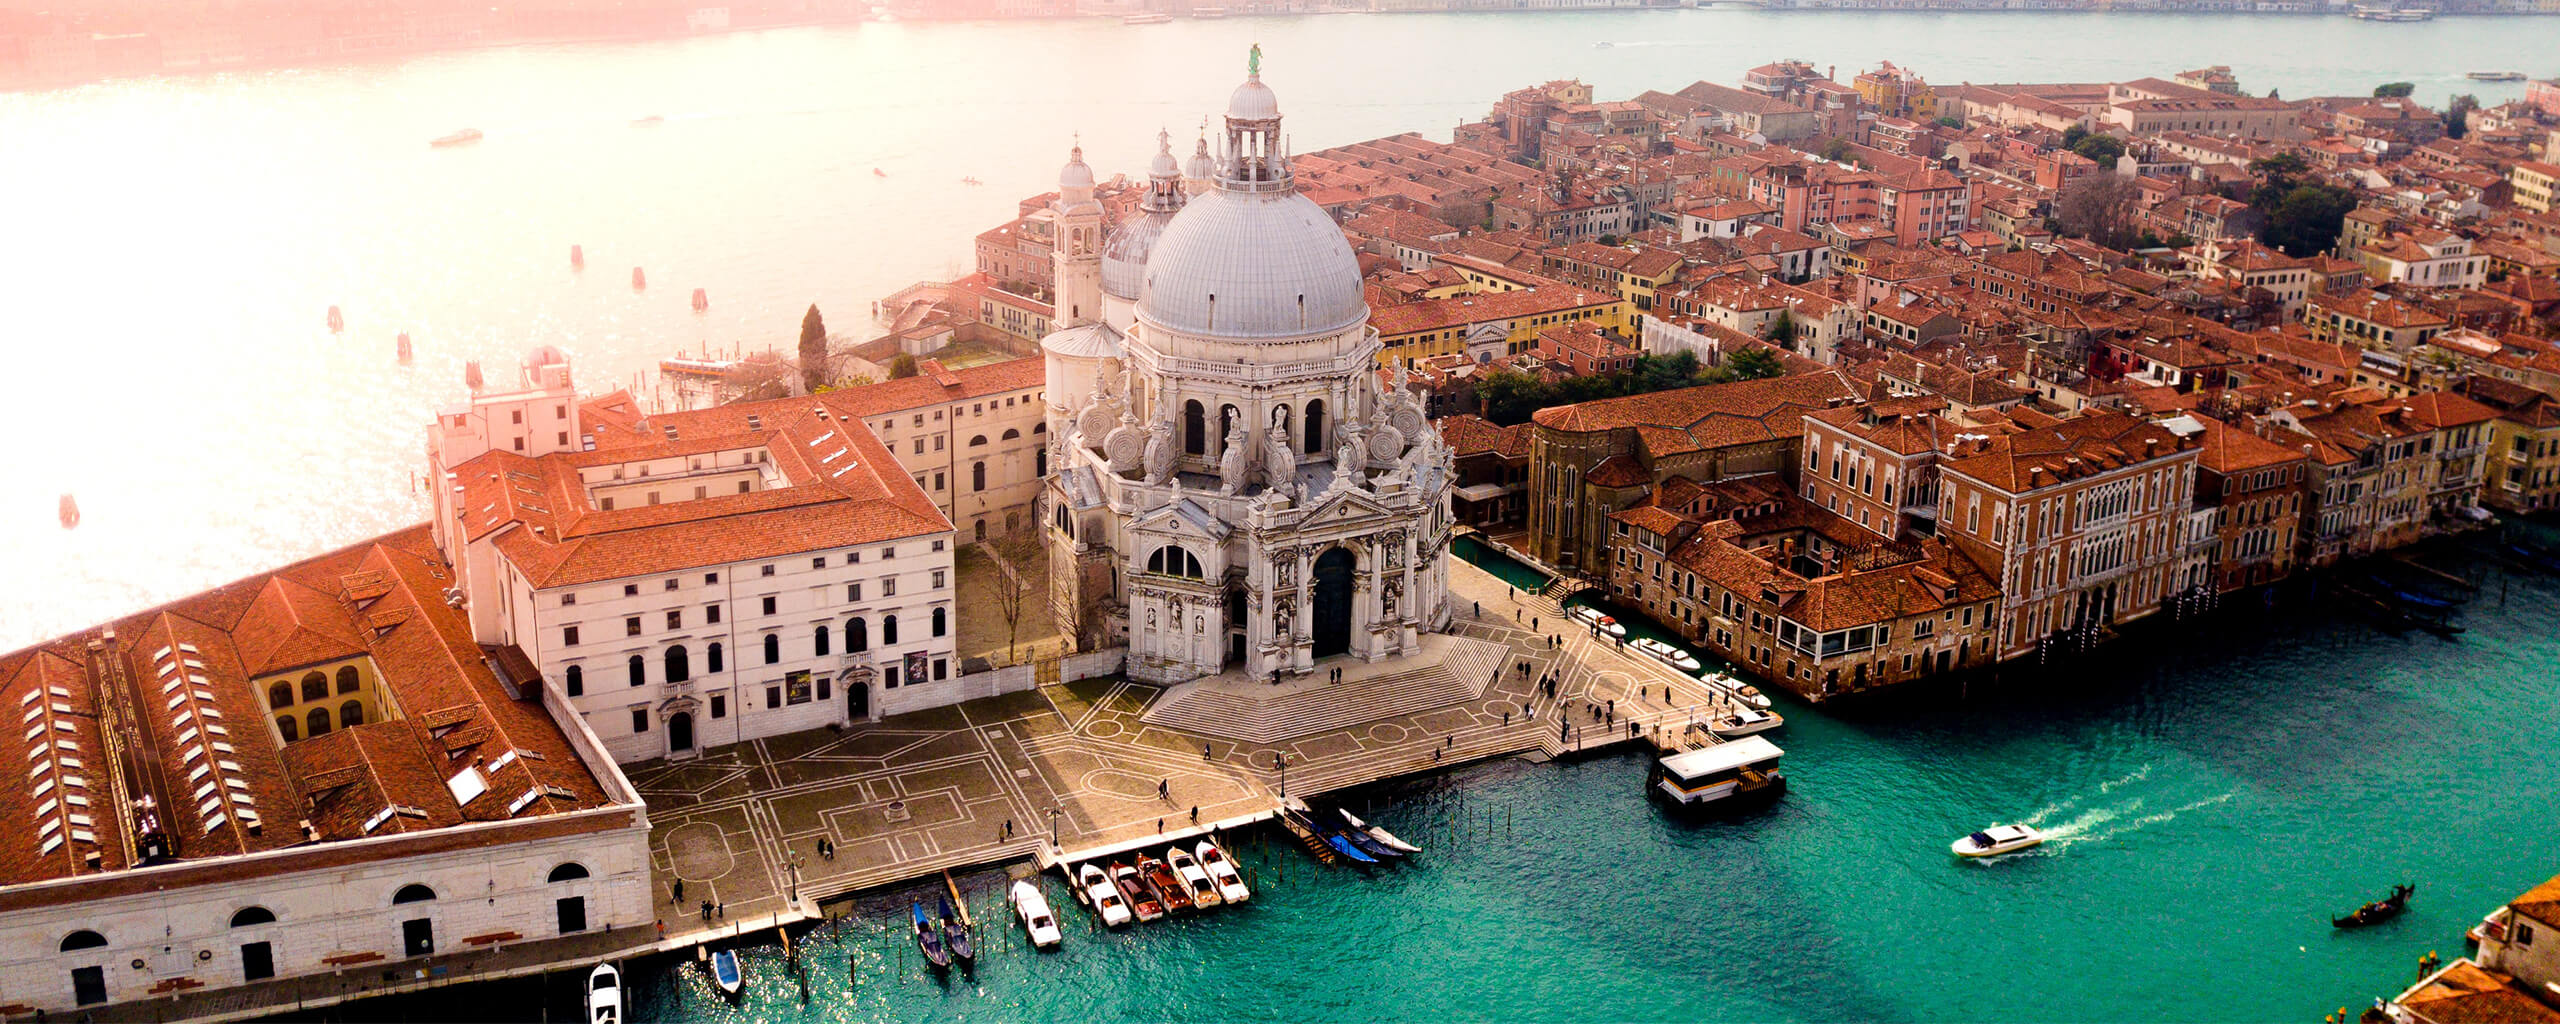 best places to visit in italy - venice